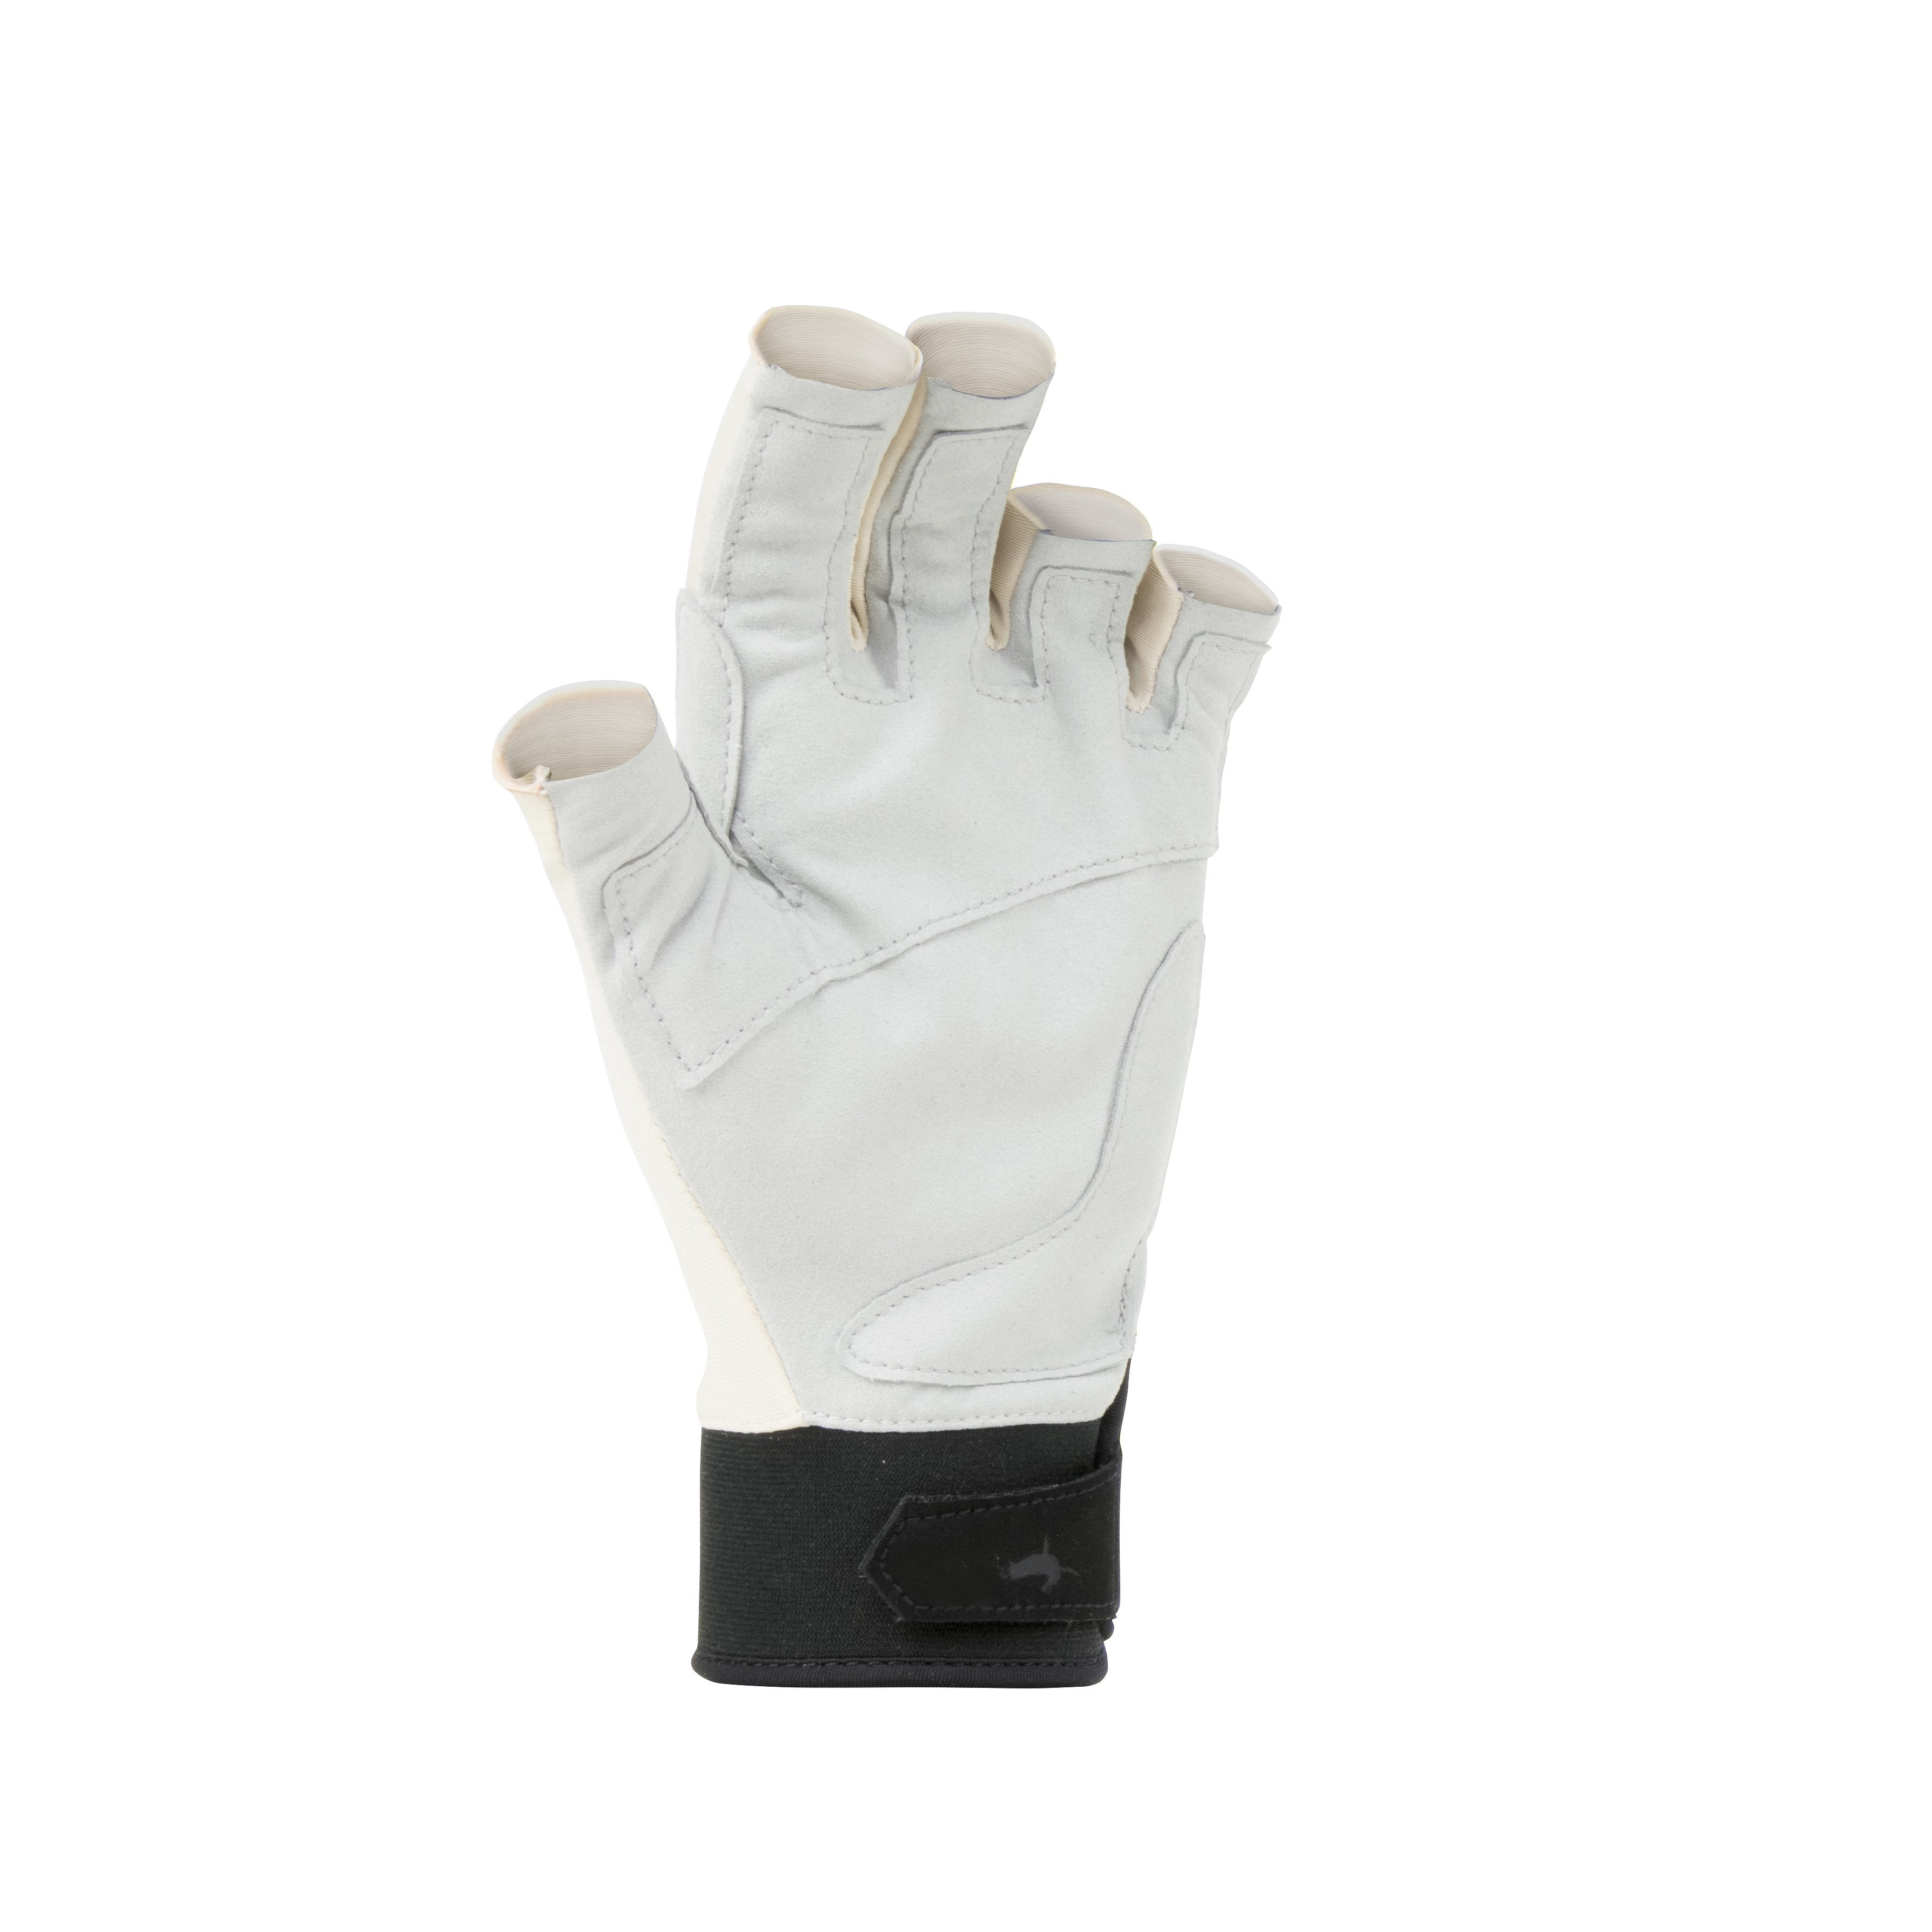 Solo UPF50+ Fishing Step Finger Glove - DISCONTINUED